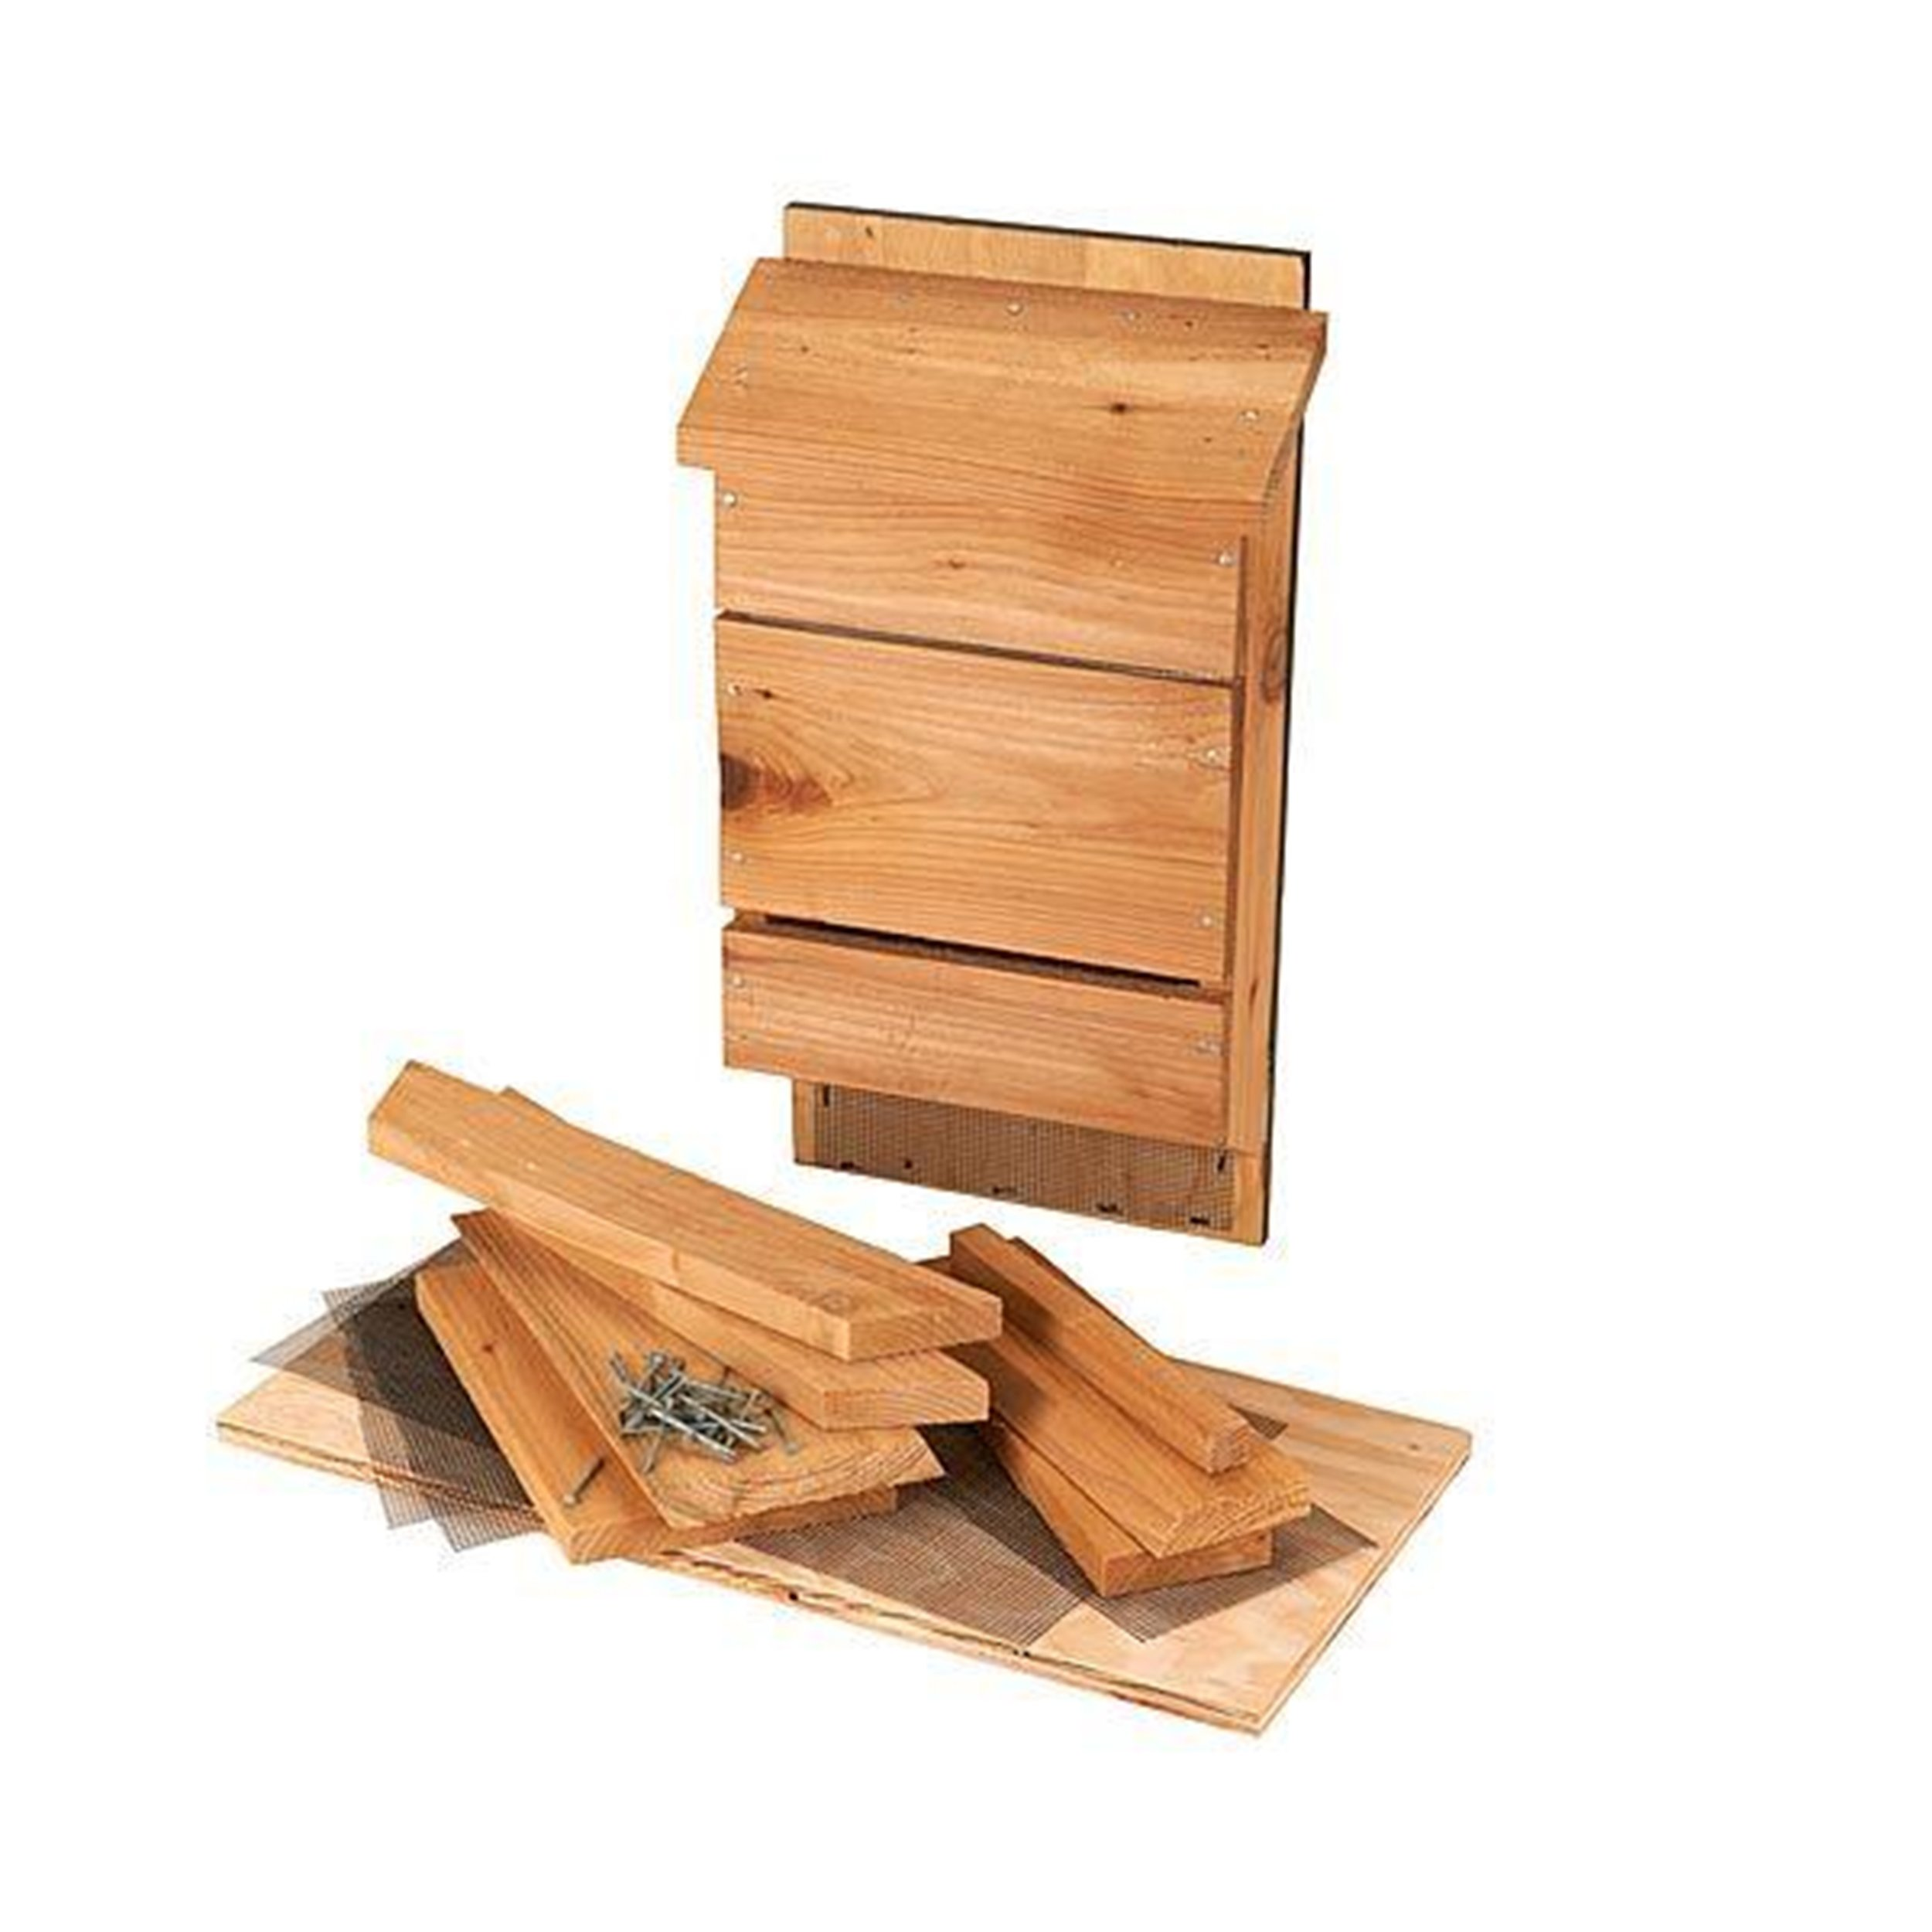 Single-celled Bat House Kit by Woodcraft